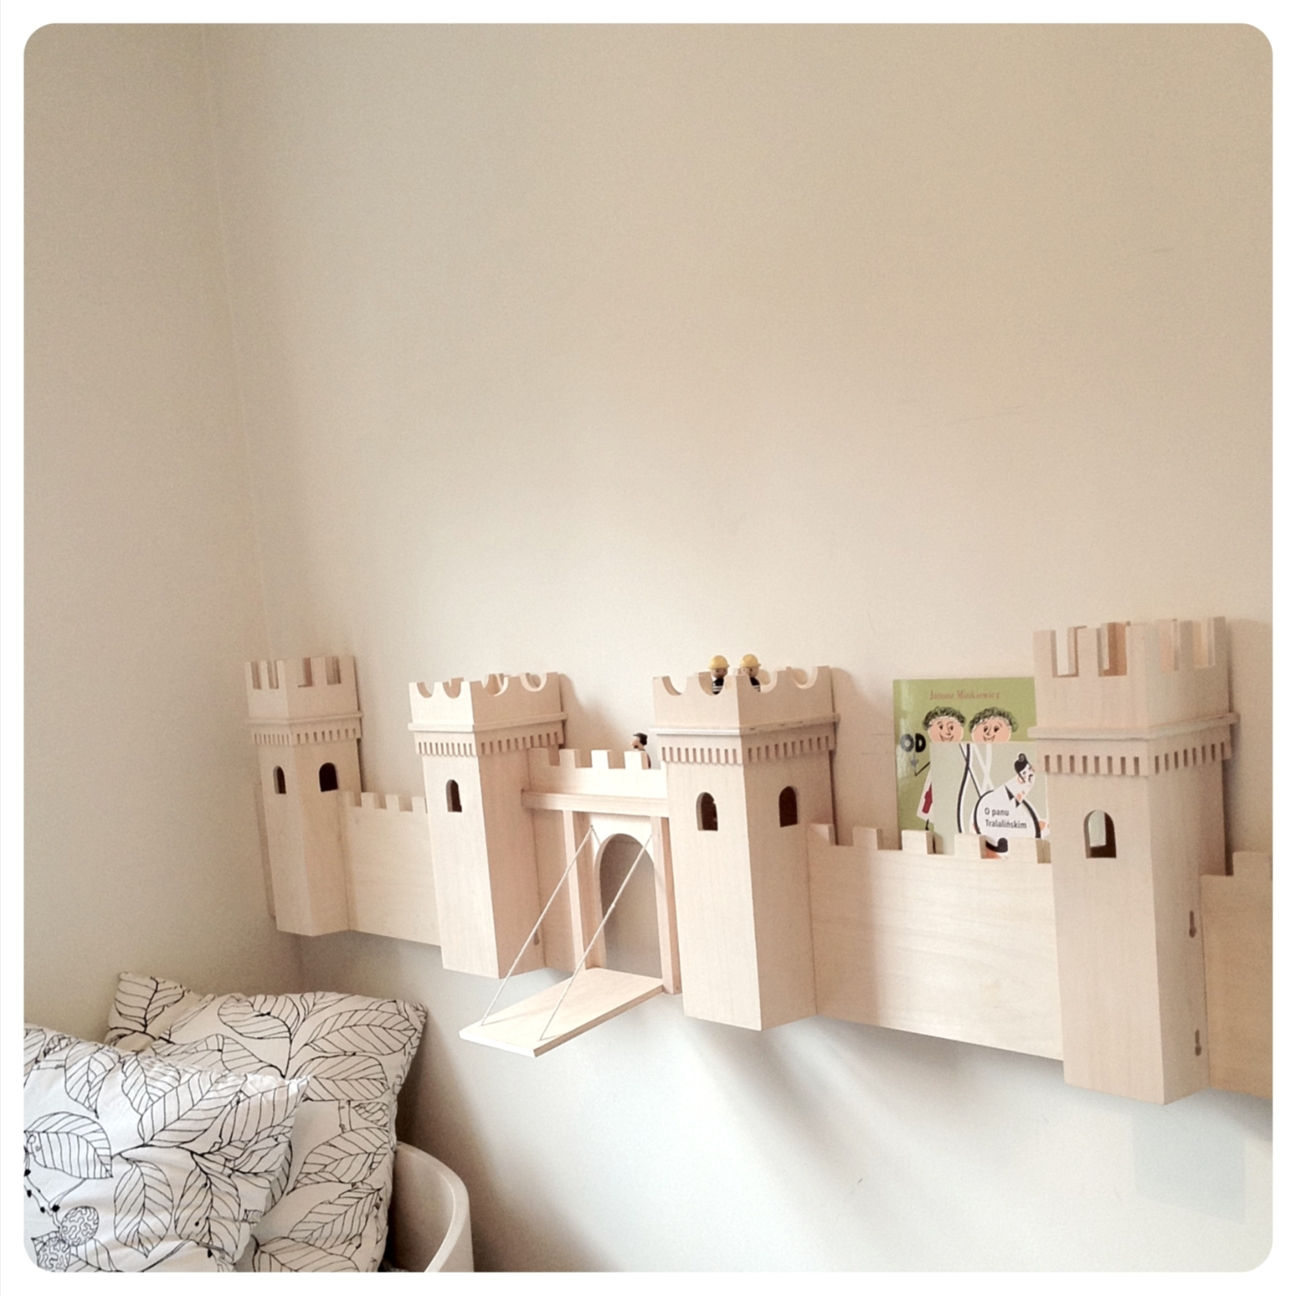 diy-castel-turn-into-bookshelf